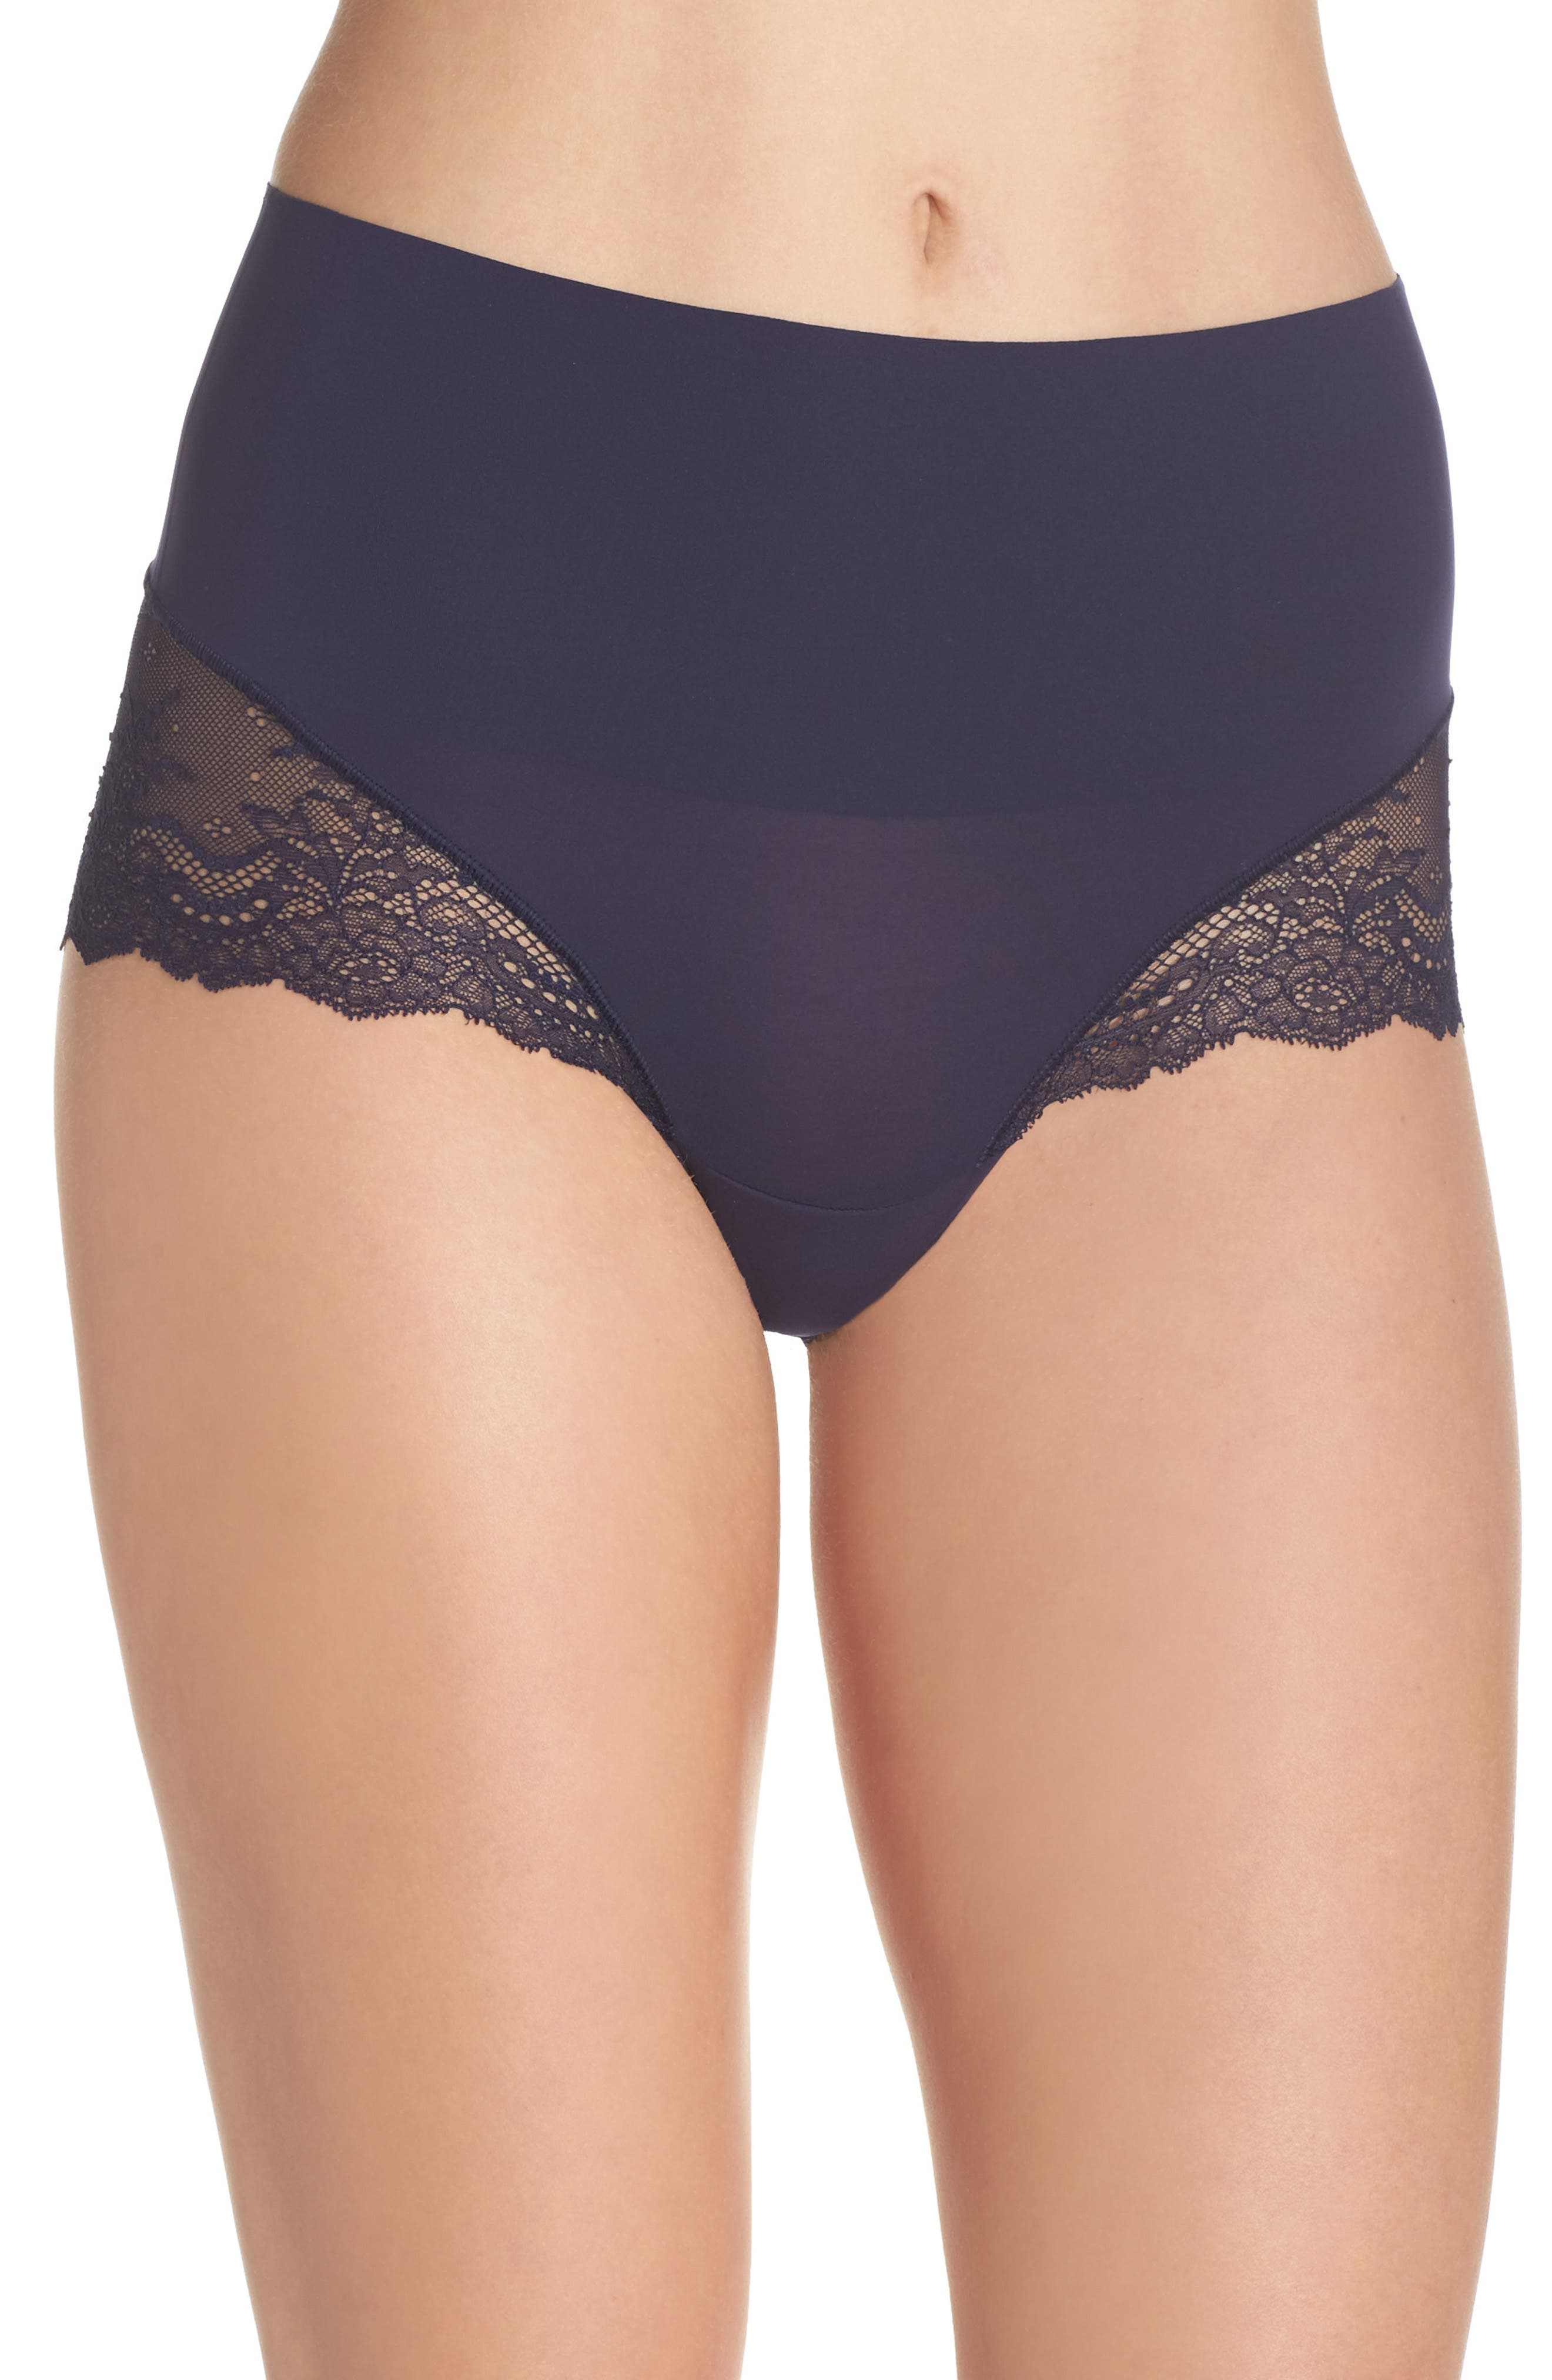 Undie-tectable Lace Hipster Panties,                         Main,                         color, Midnight Navy